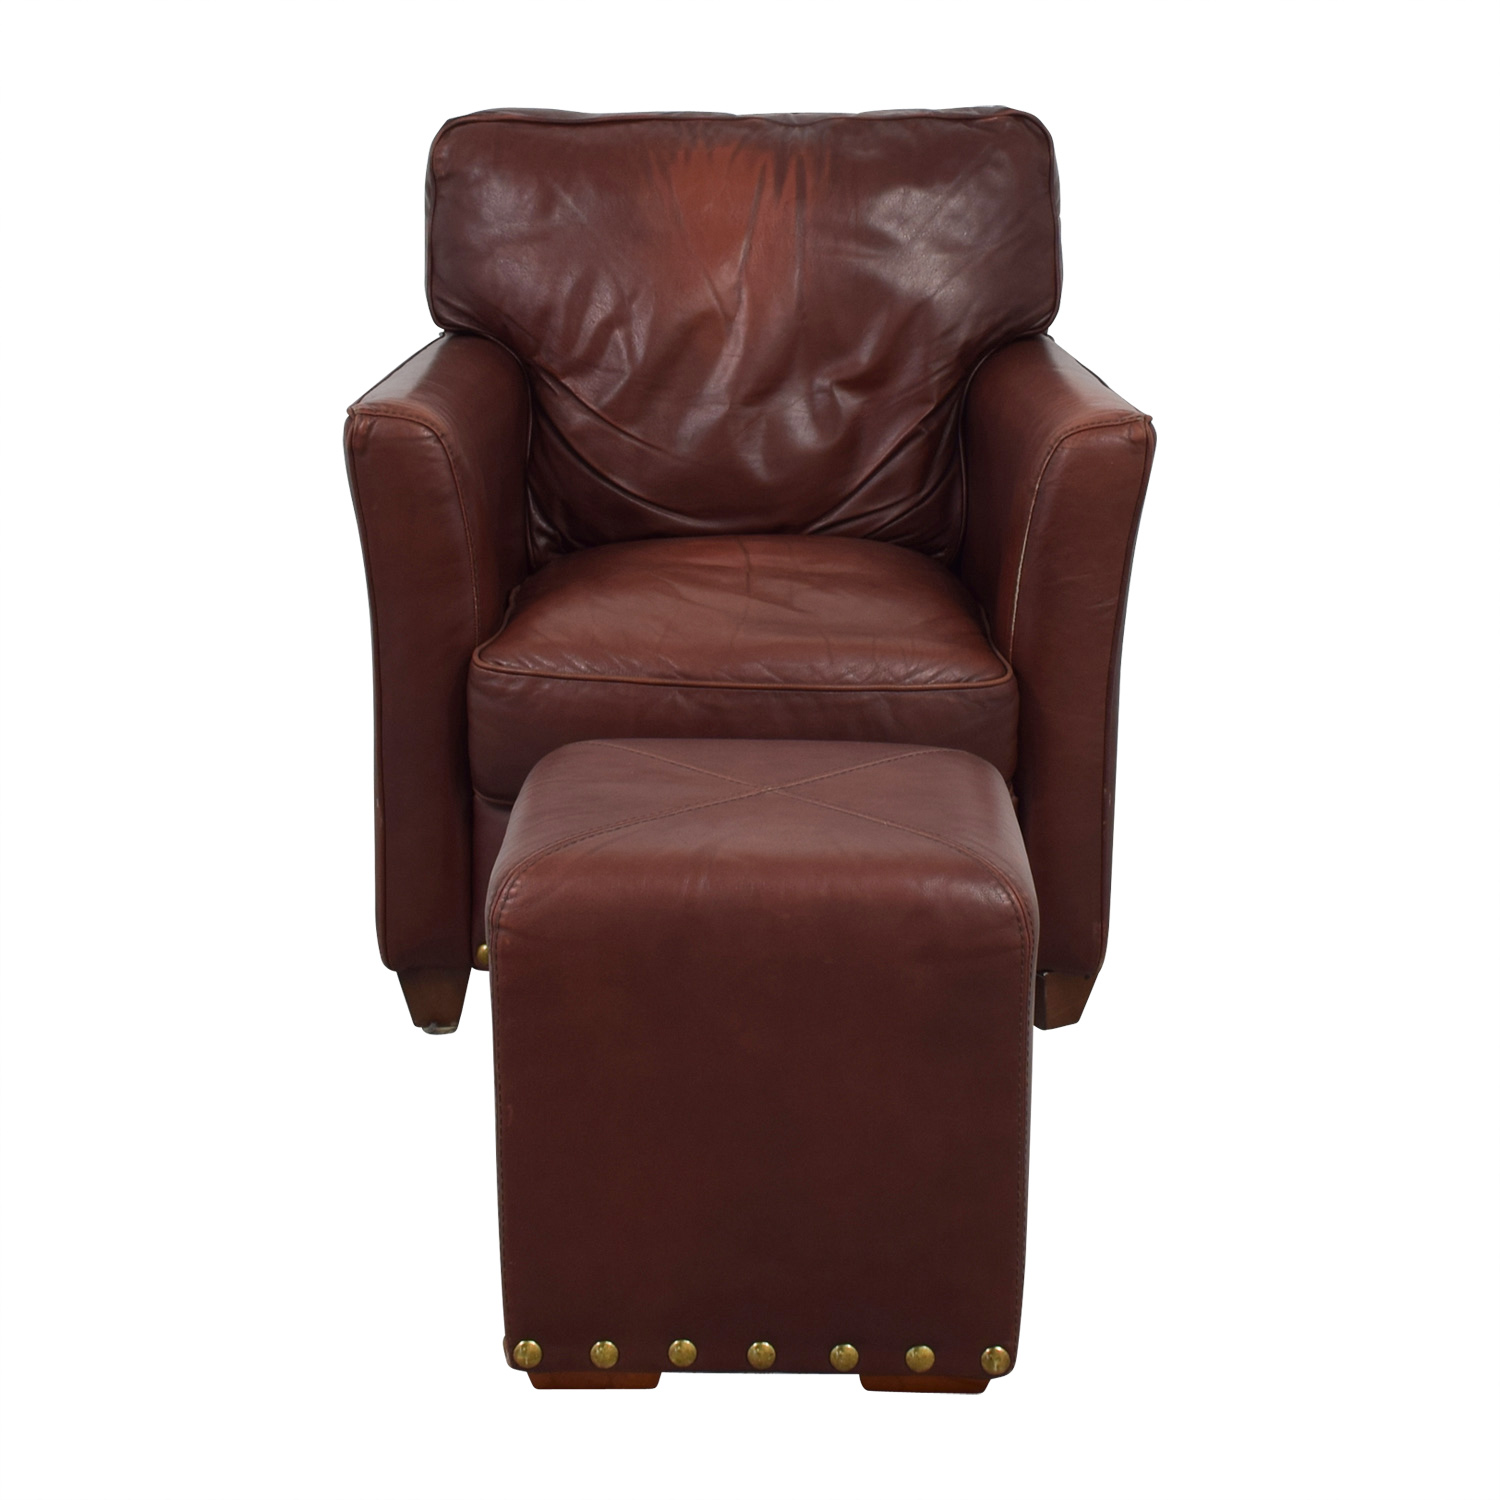 Superb 78 Off Brown Leather Chair And Ottoman Chairs Ncnpc Chair Design For Home Ncnpcorg